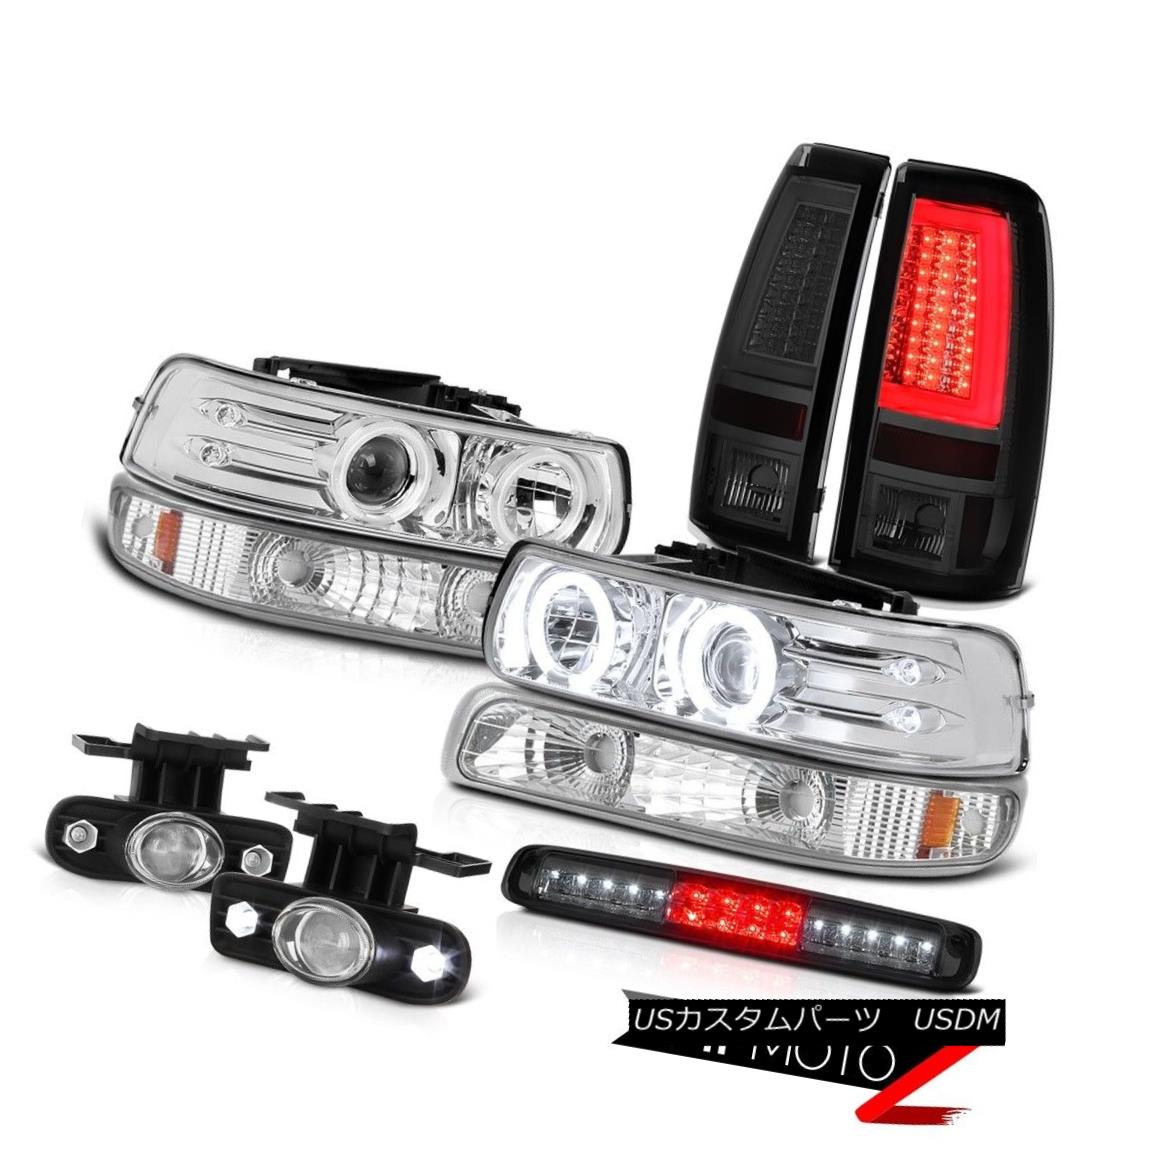 テールライト 99-02 Silverado LTZ Taillamps Signal Light Headlights High Stop Fog Lights LED 99-02 Silverado LTZ TaillampsシグナルライトヘッドライトハイストップフォグライトLED